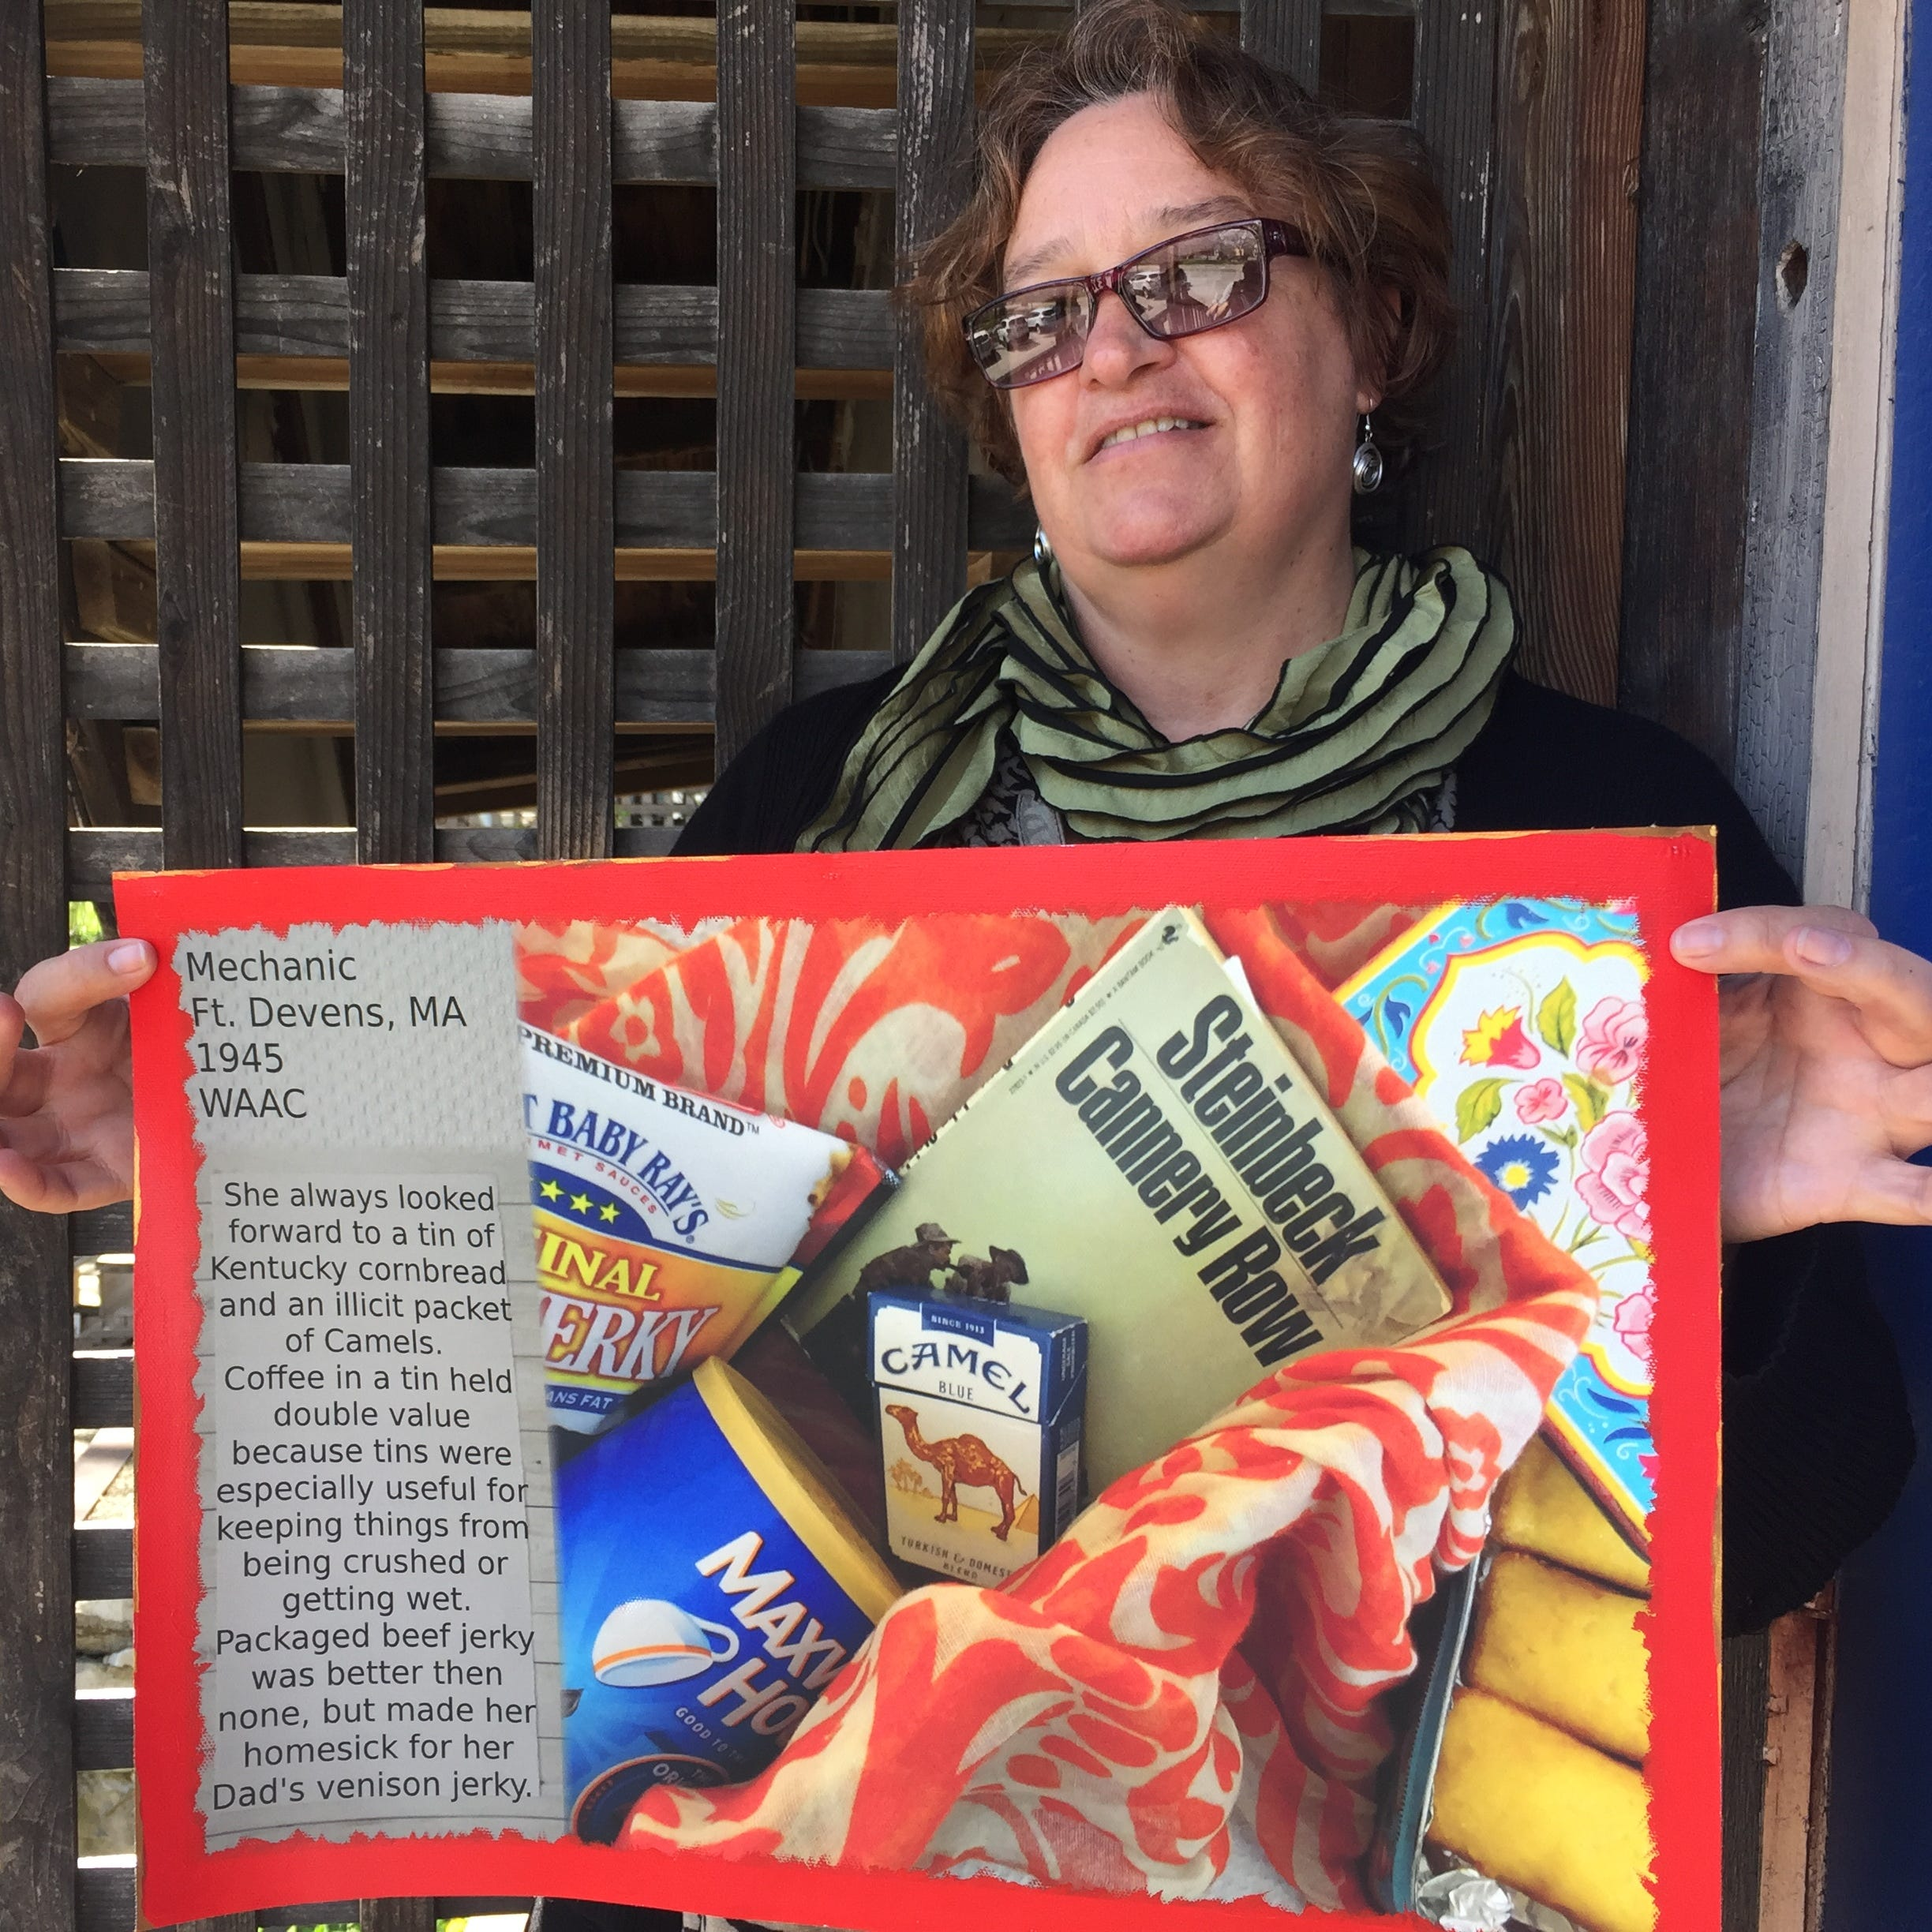 Members of the military love receiving food from home. A Shelburne woman shows that in art.